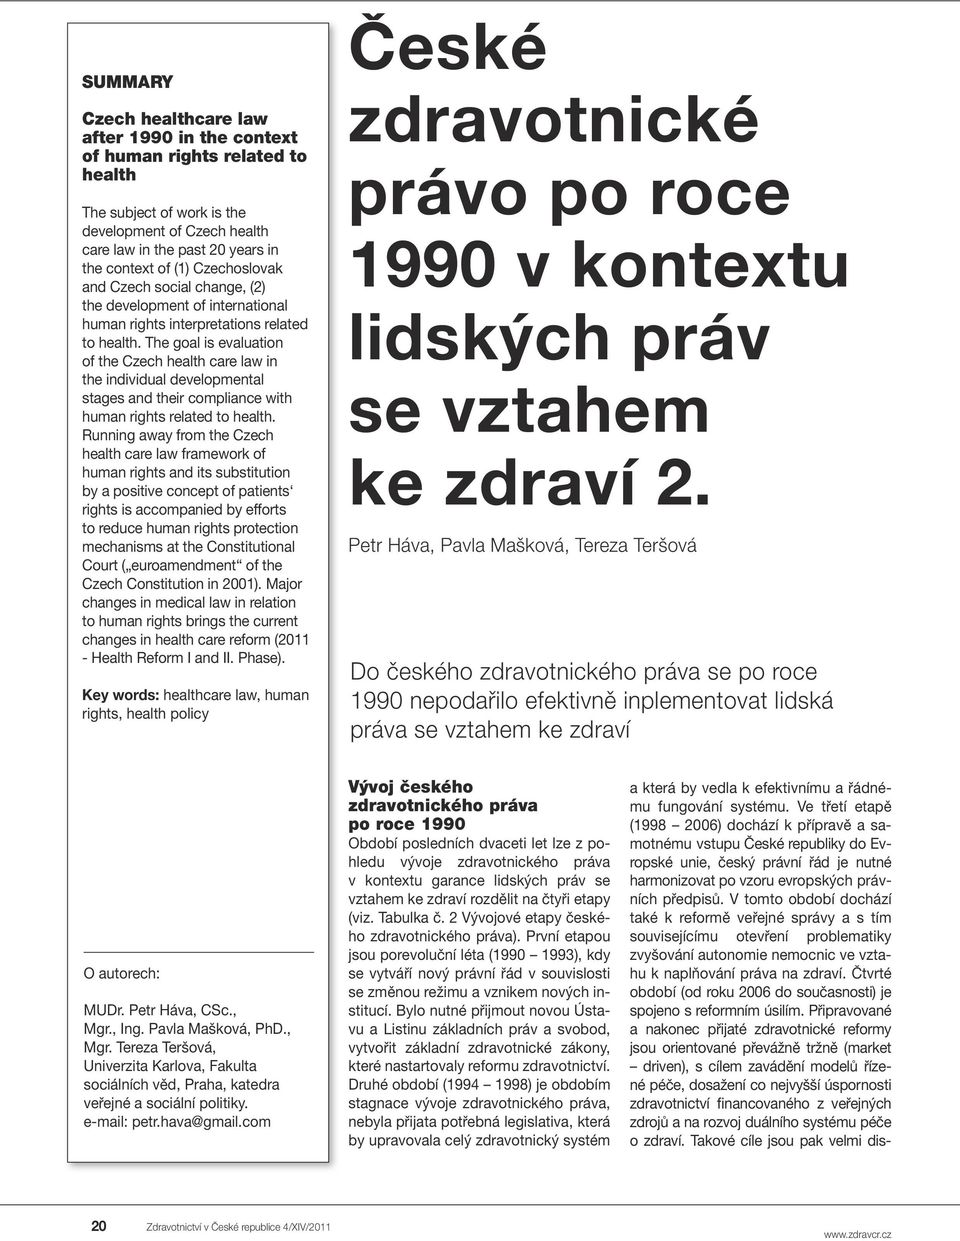 The goal is evaluation of the Czech health care law in the individual developmental stages and their compliance with human rights related to health.